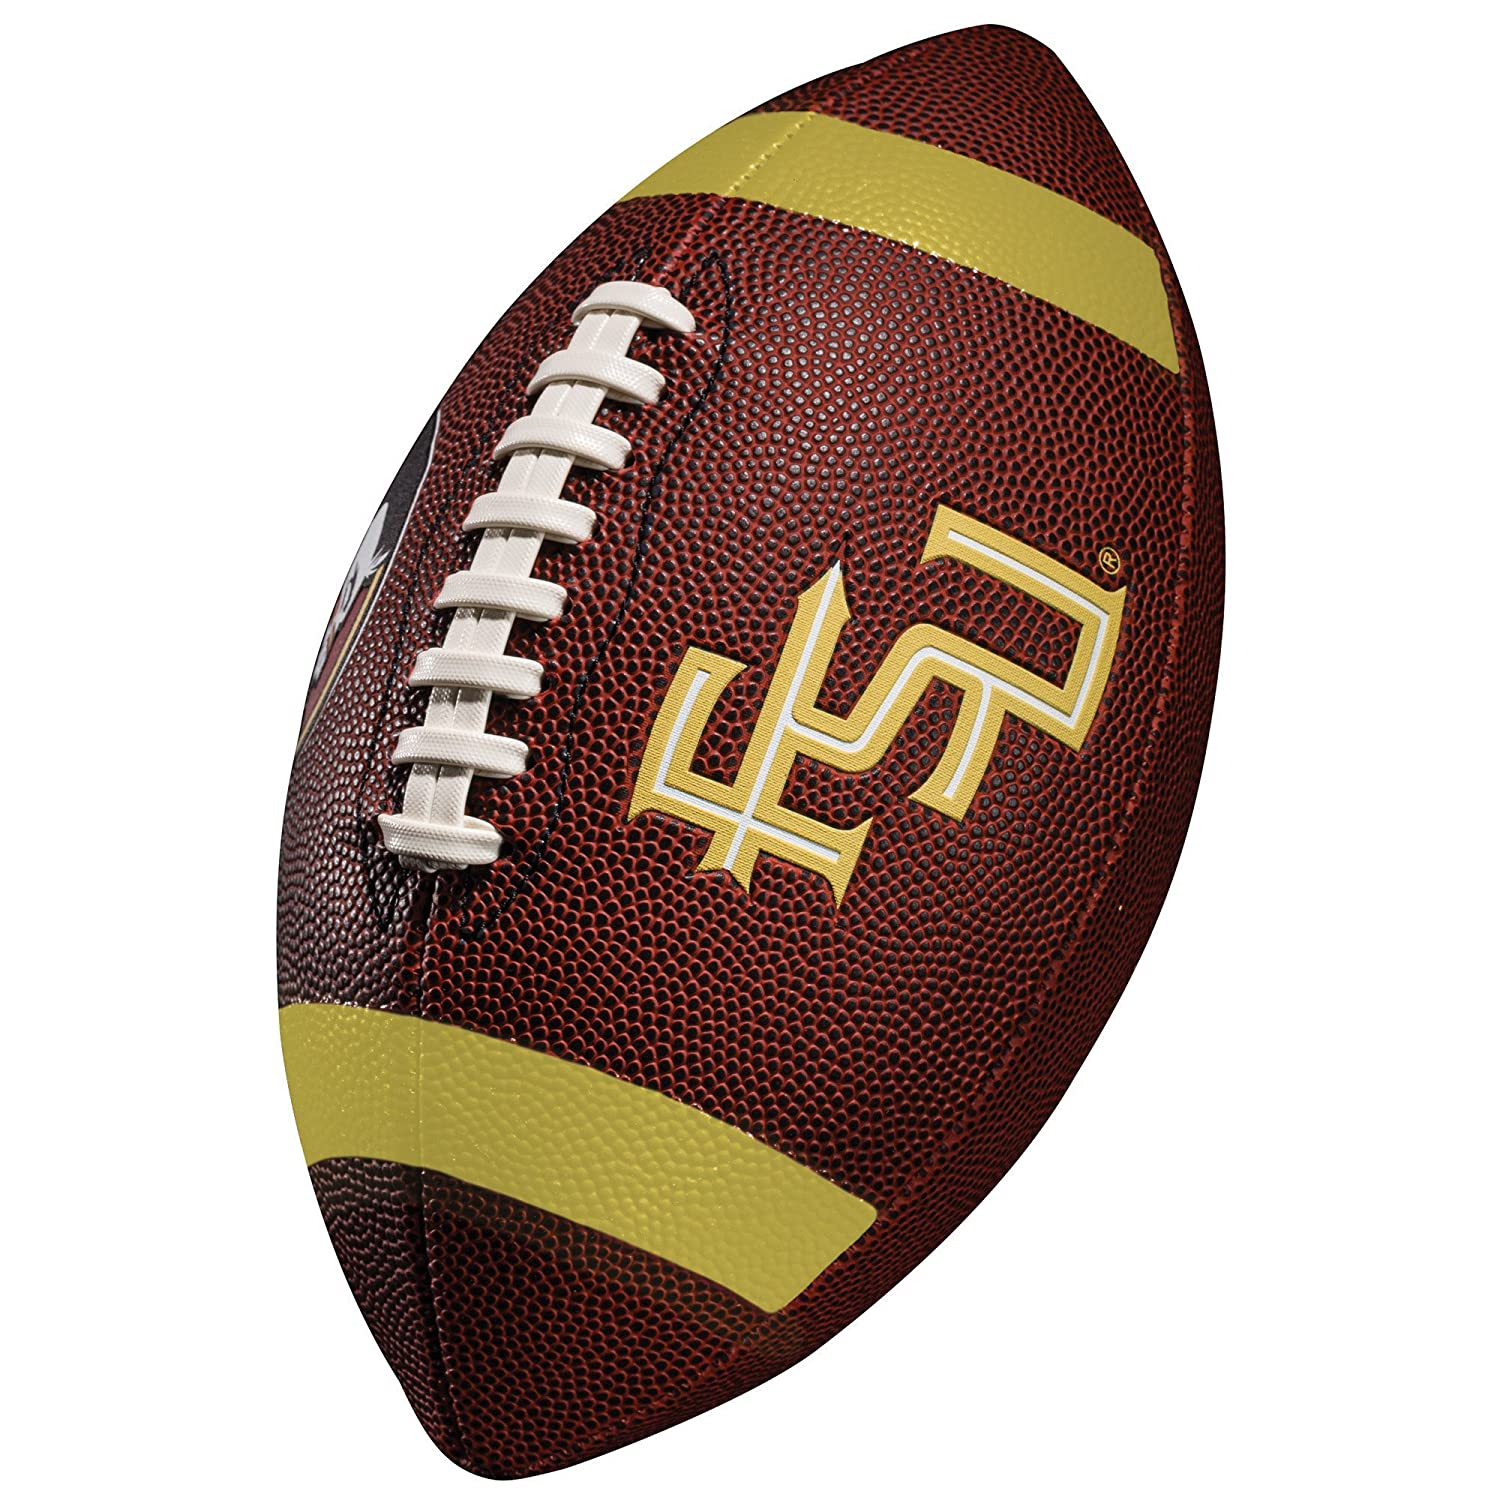 Official College Team Football with Team Logos Franklin Sports Kids NCAA Youth Football Junior Size Football